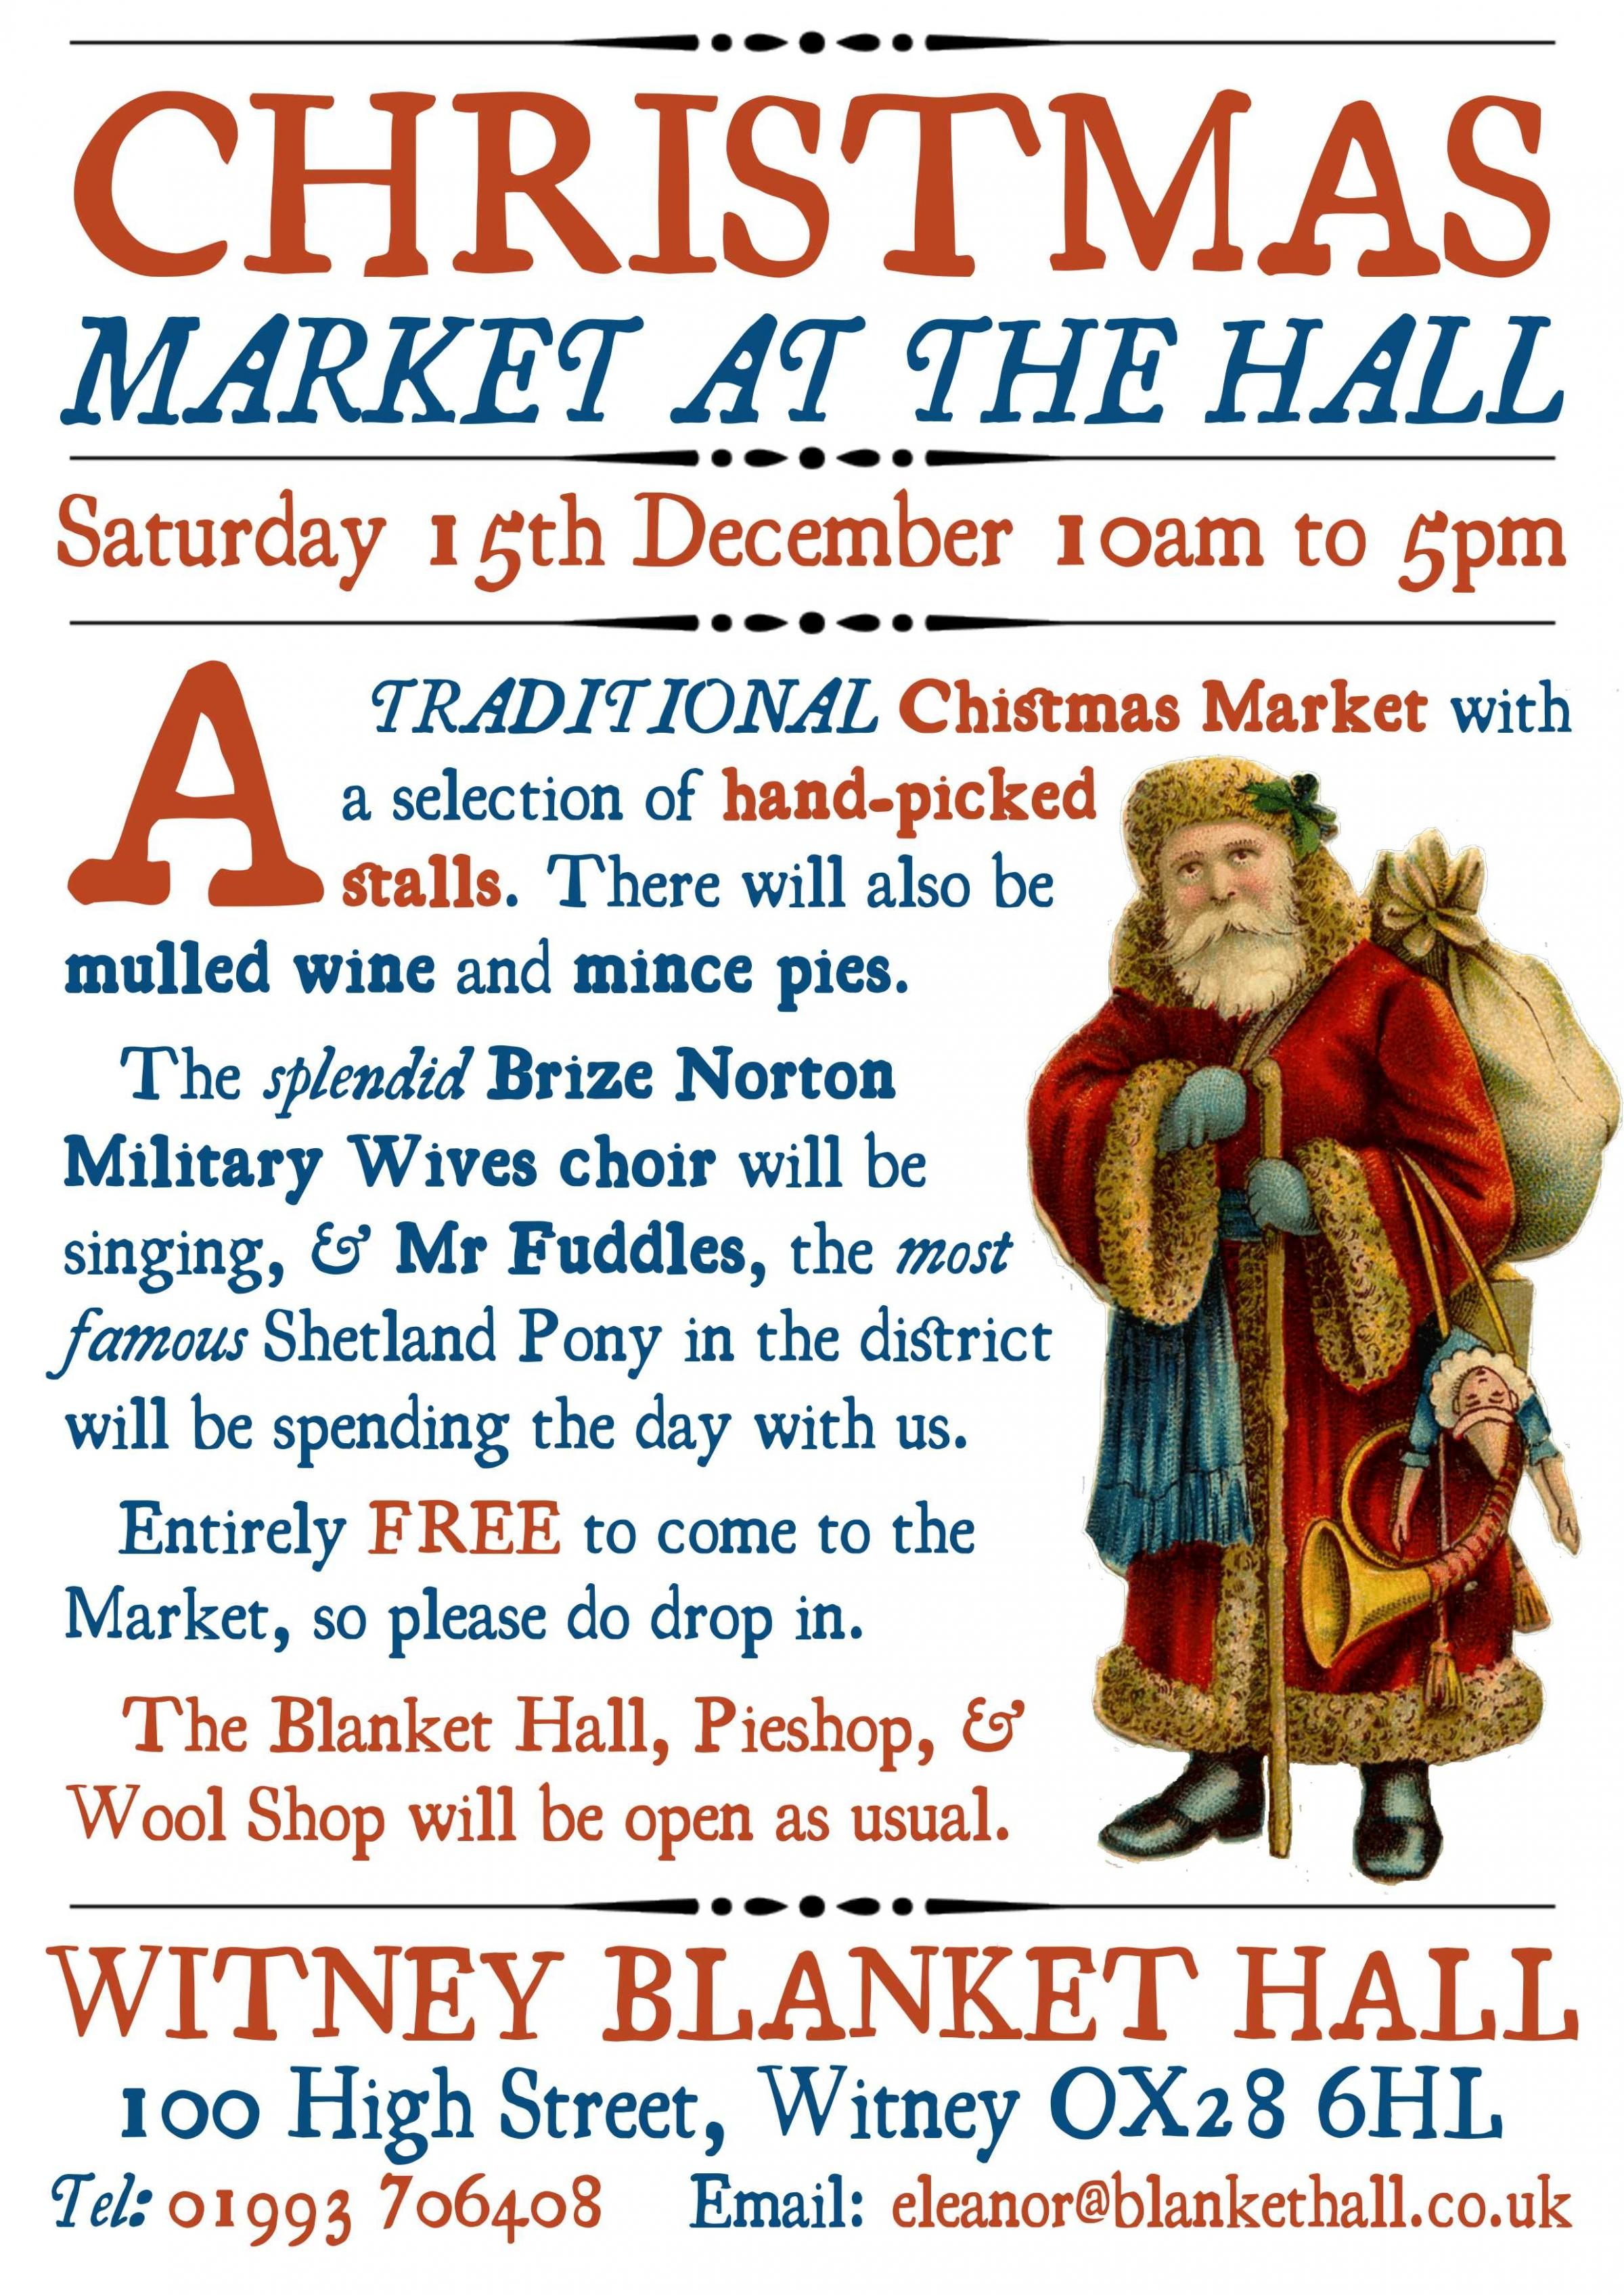 Christmas Market at the Hall